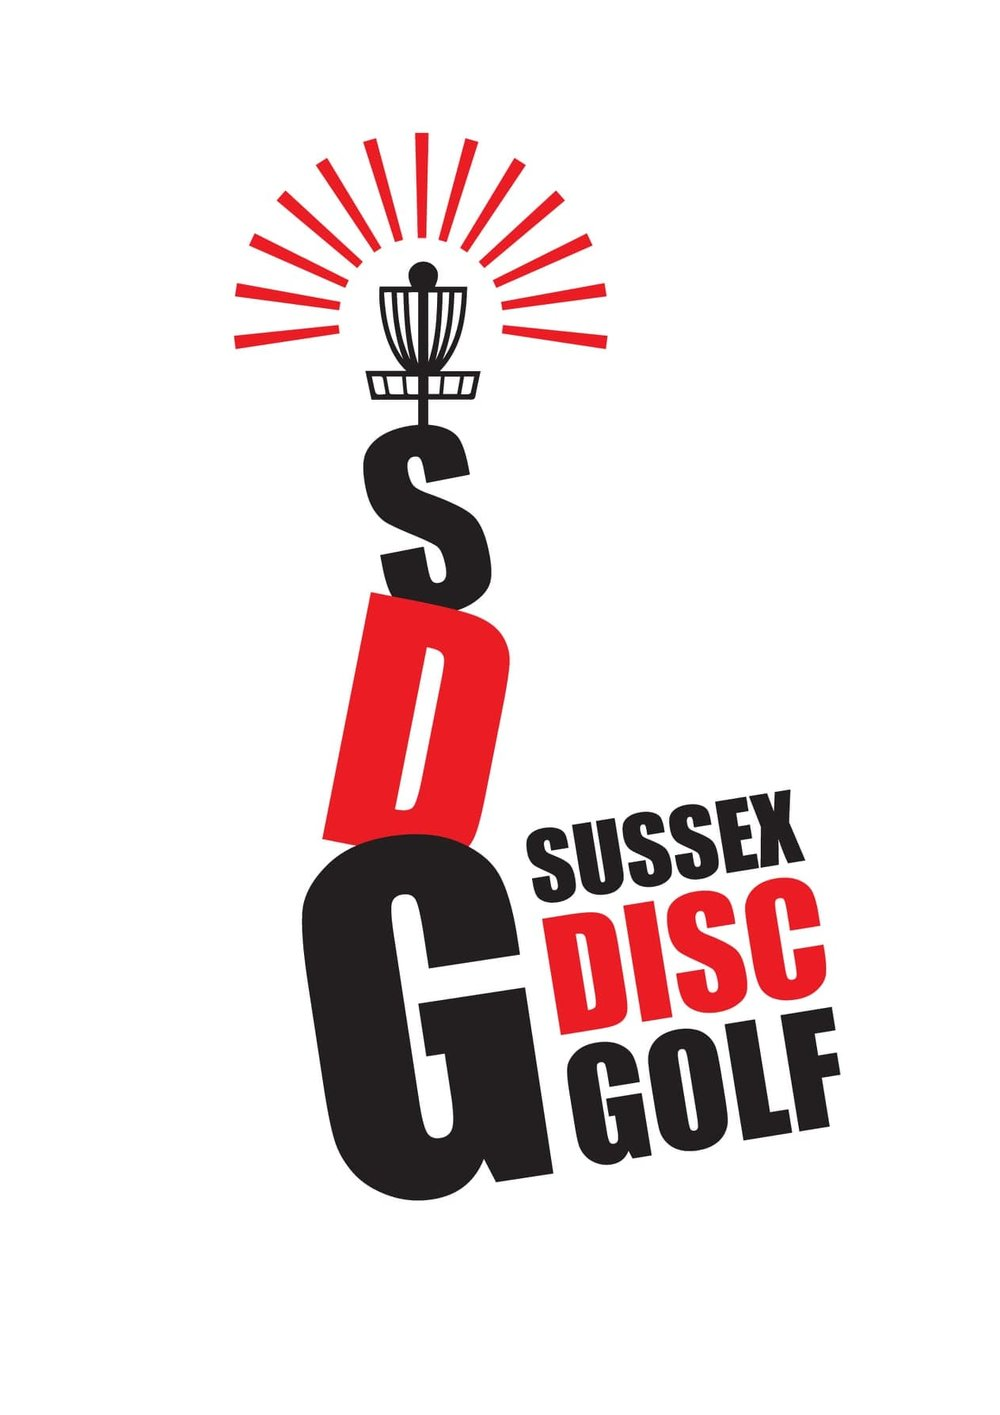 Event Organiser:    Sussex Disc Golf